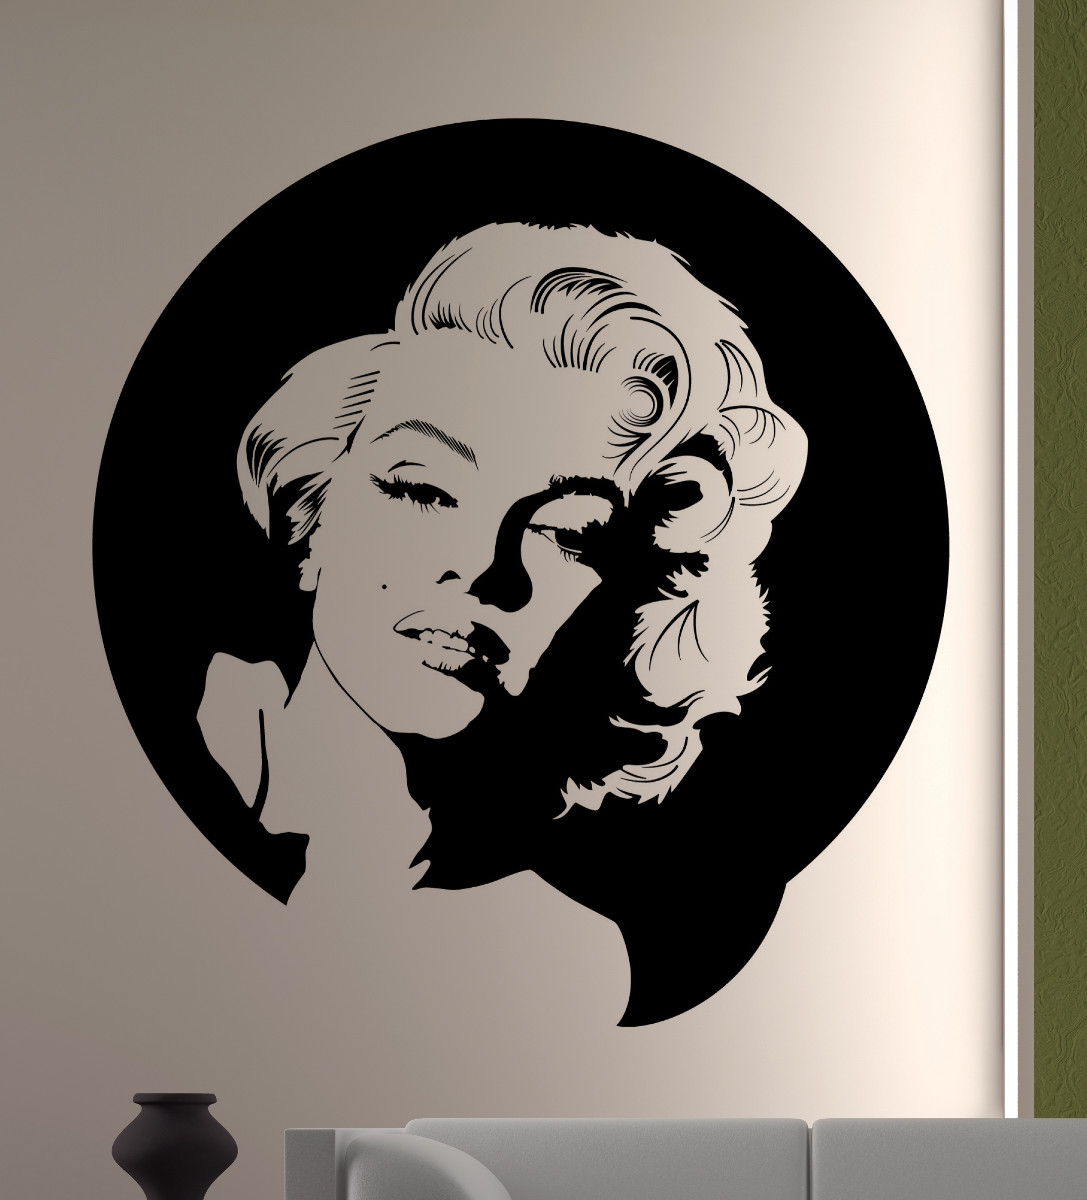 streetwall wandtattoo marilyn monroe portrait wandbild aufkleber. Black Bedroom Furniture Sets. Home Design Ideas